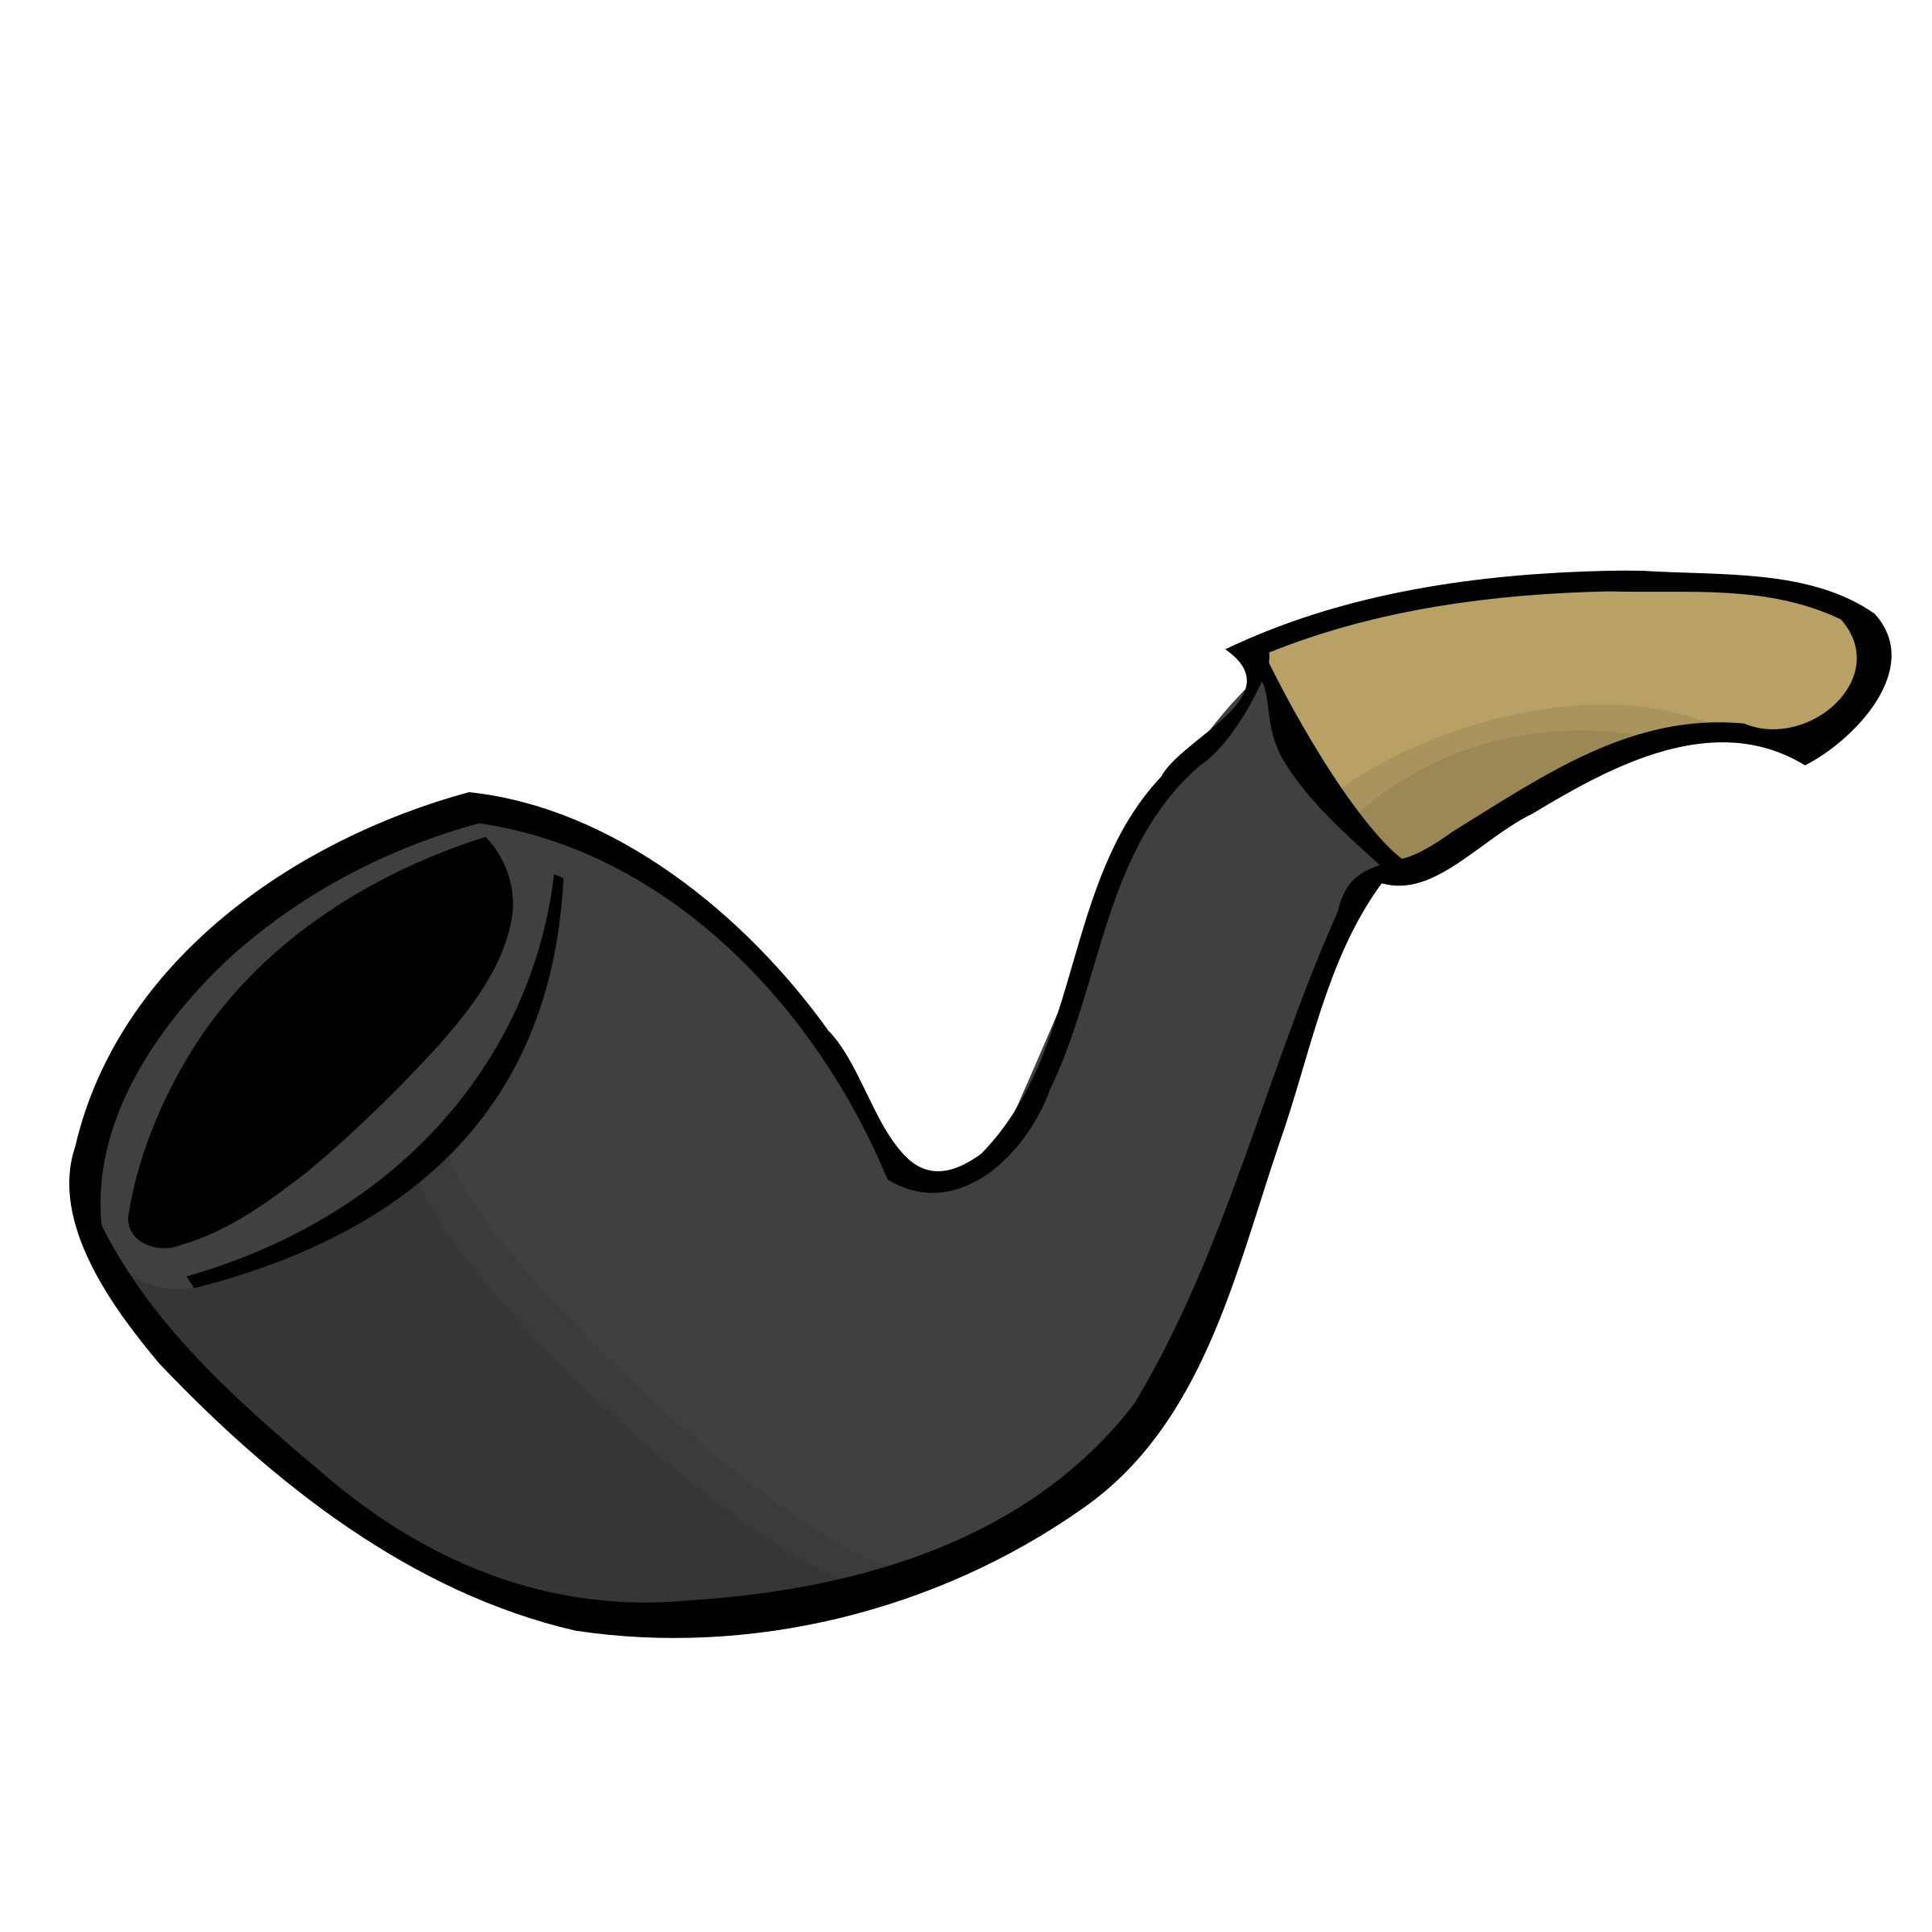 Pipe clipart cartoon. Smoking big image png